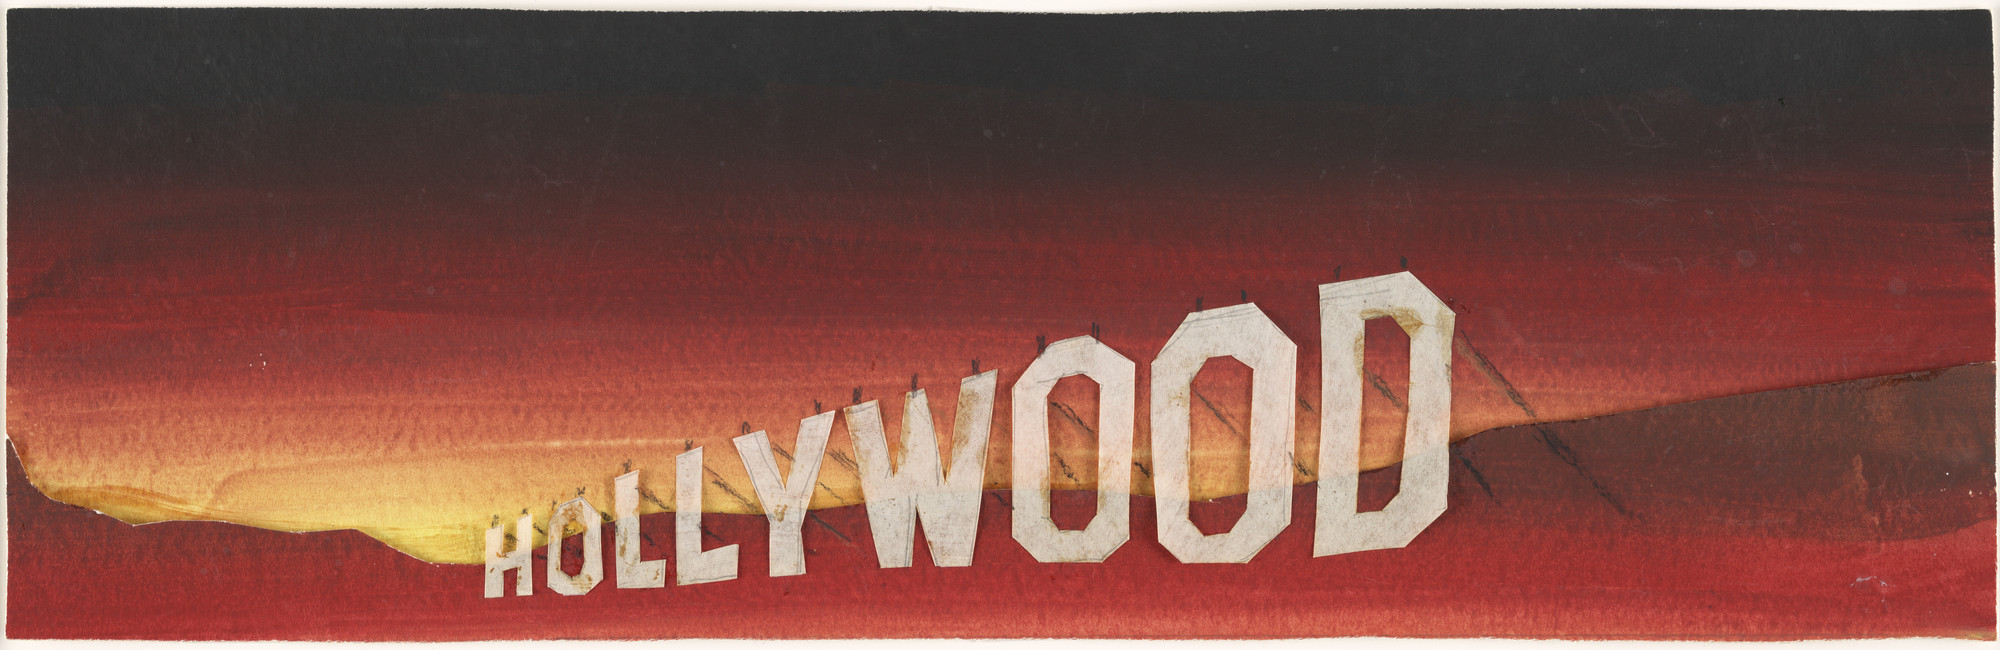 Edward Ruscha. Hollywood Study. (1968)